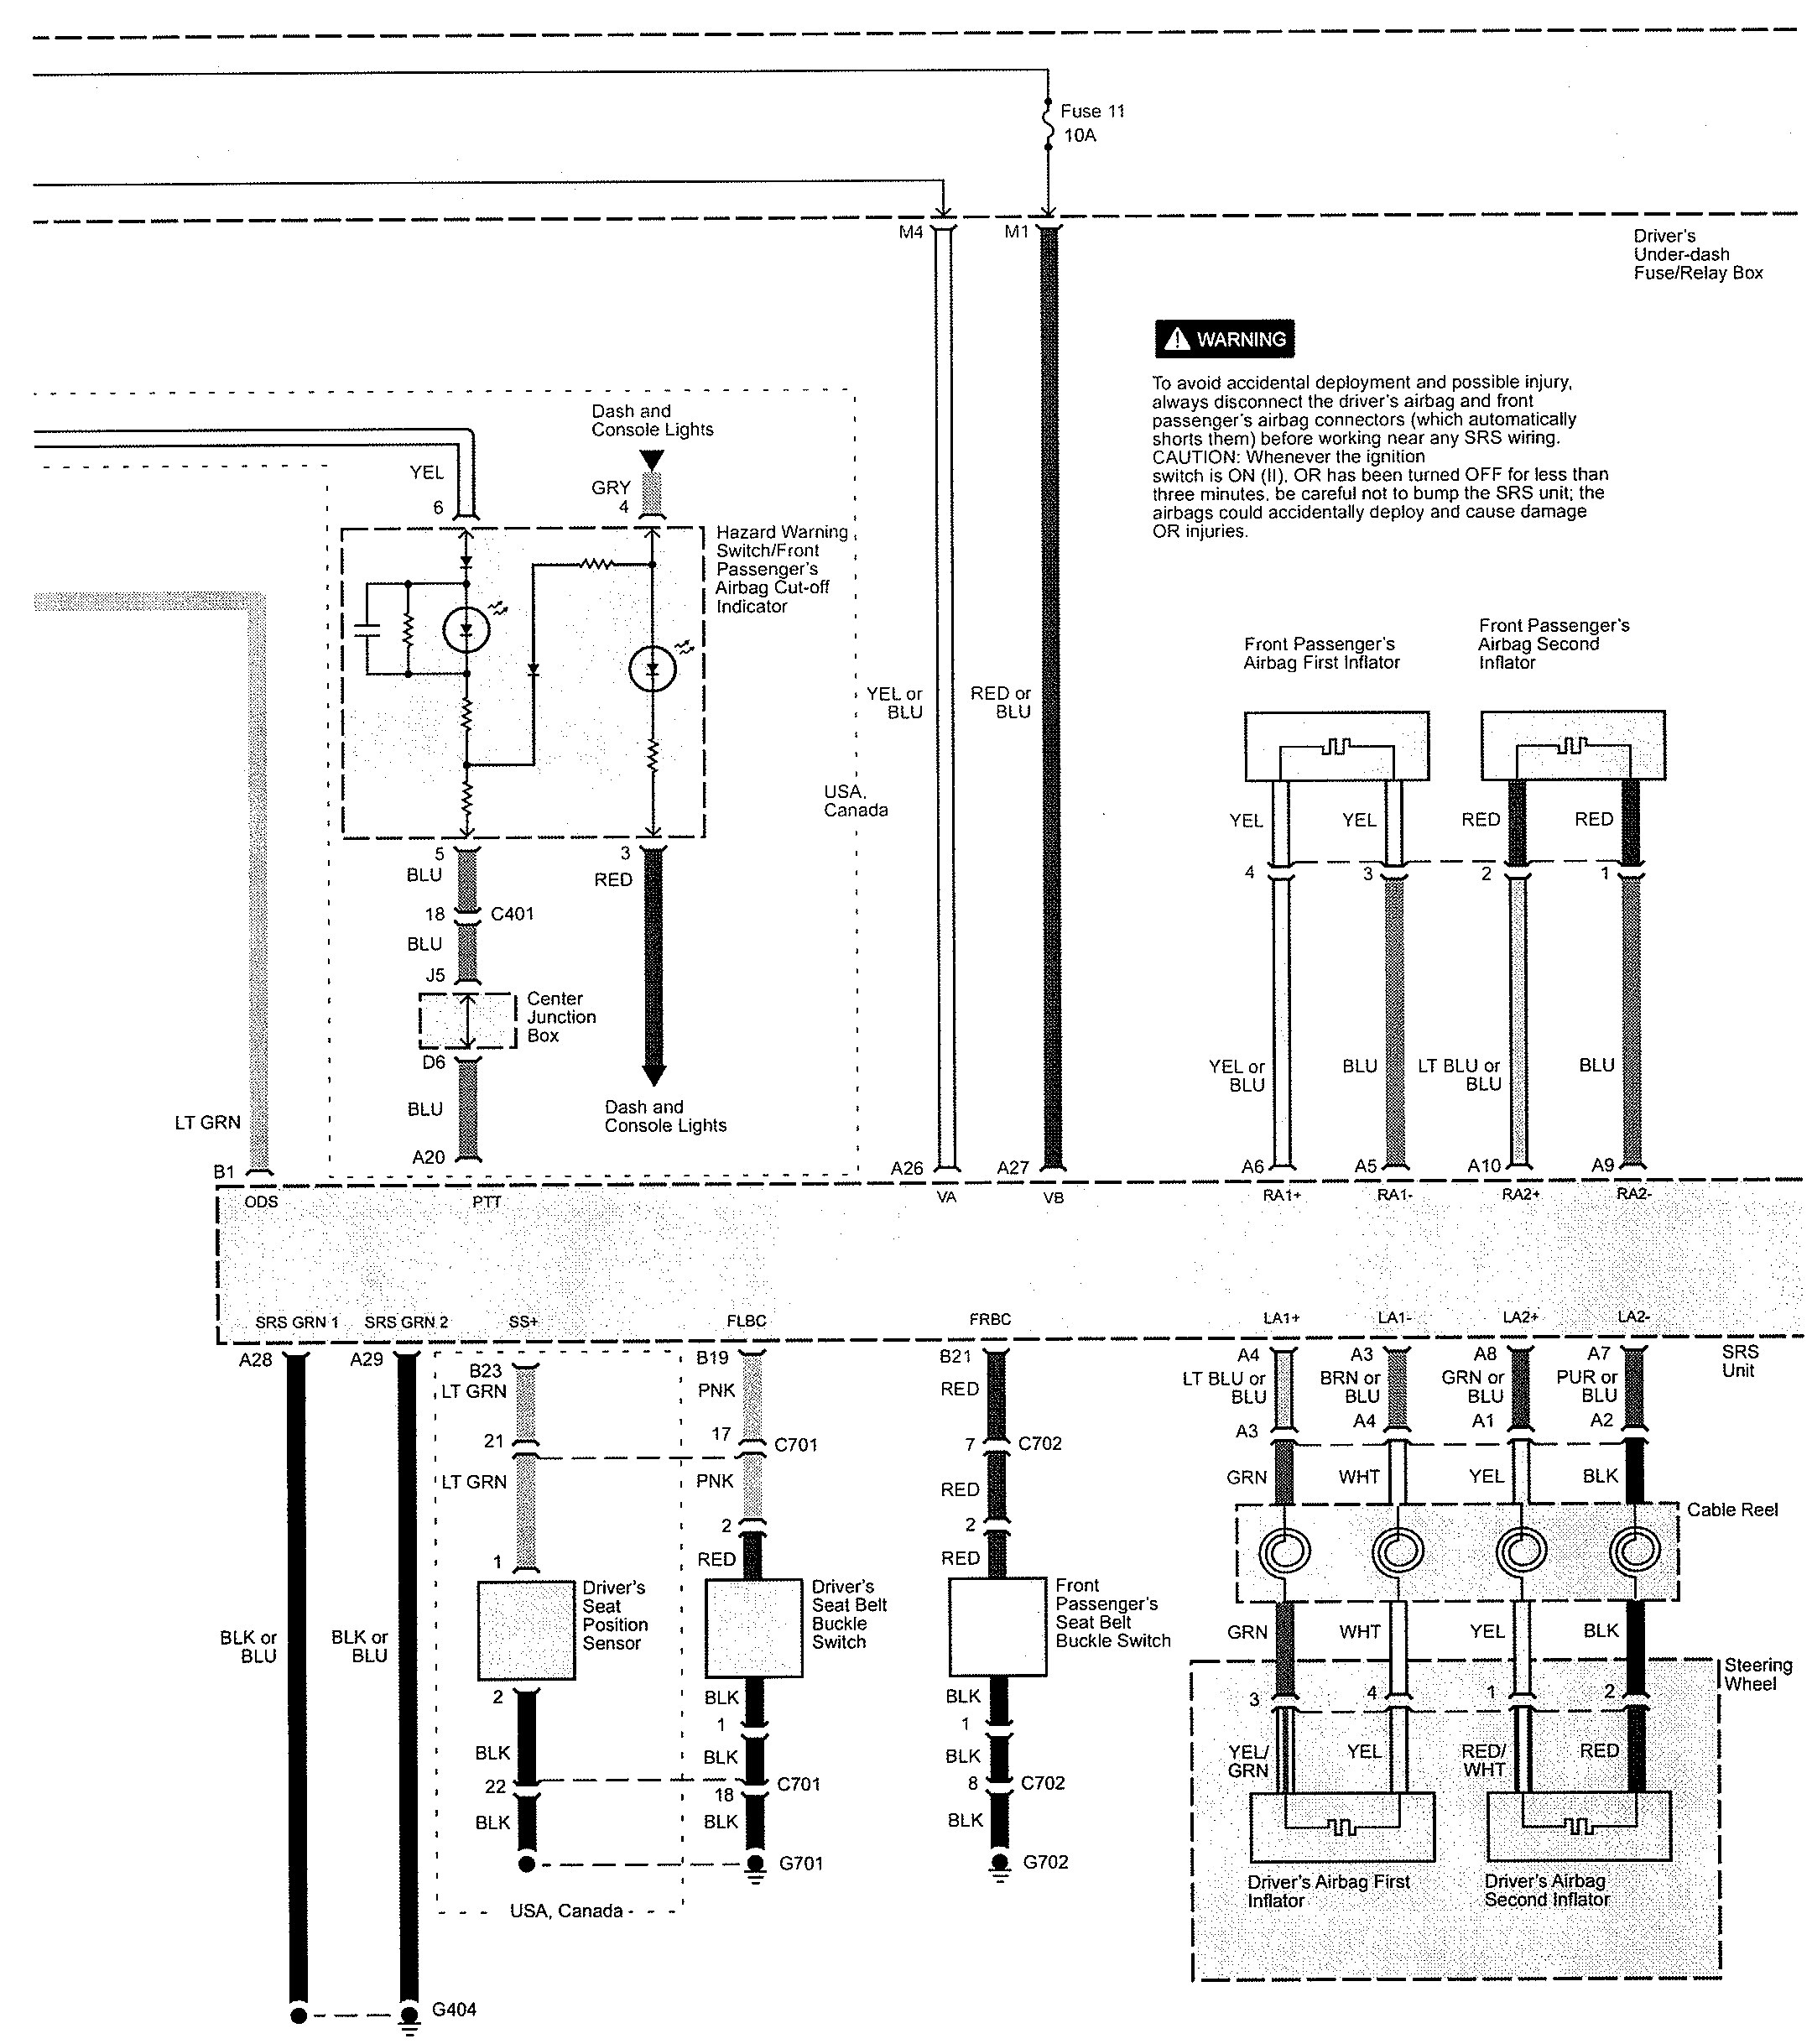 2005 Ford Freestar Radio Wiring Diagram 2008 Ford Crown